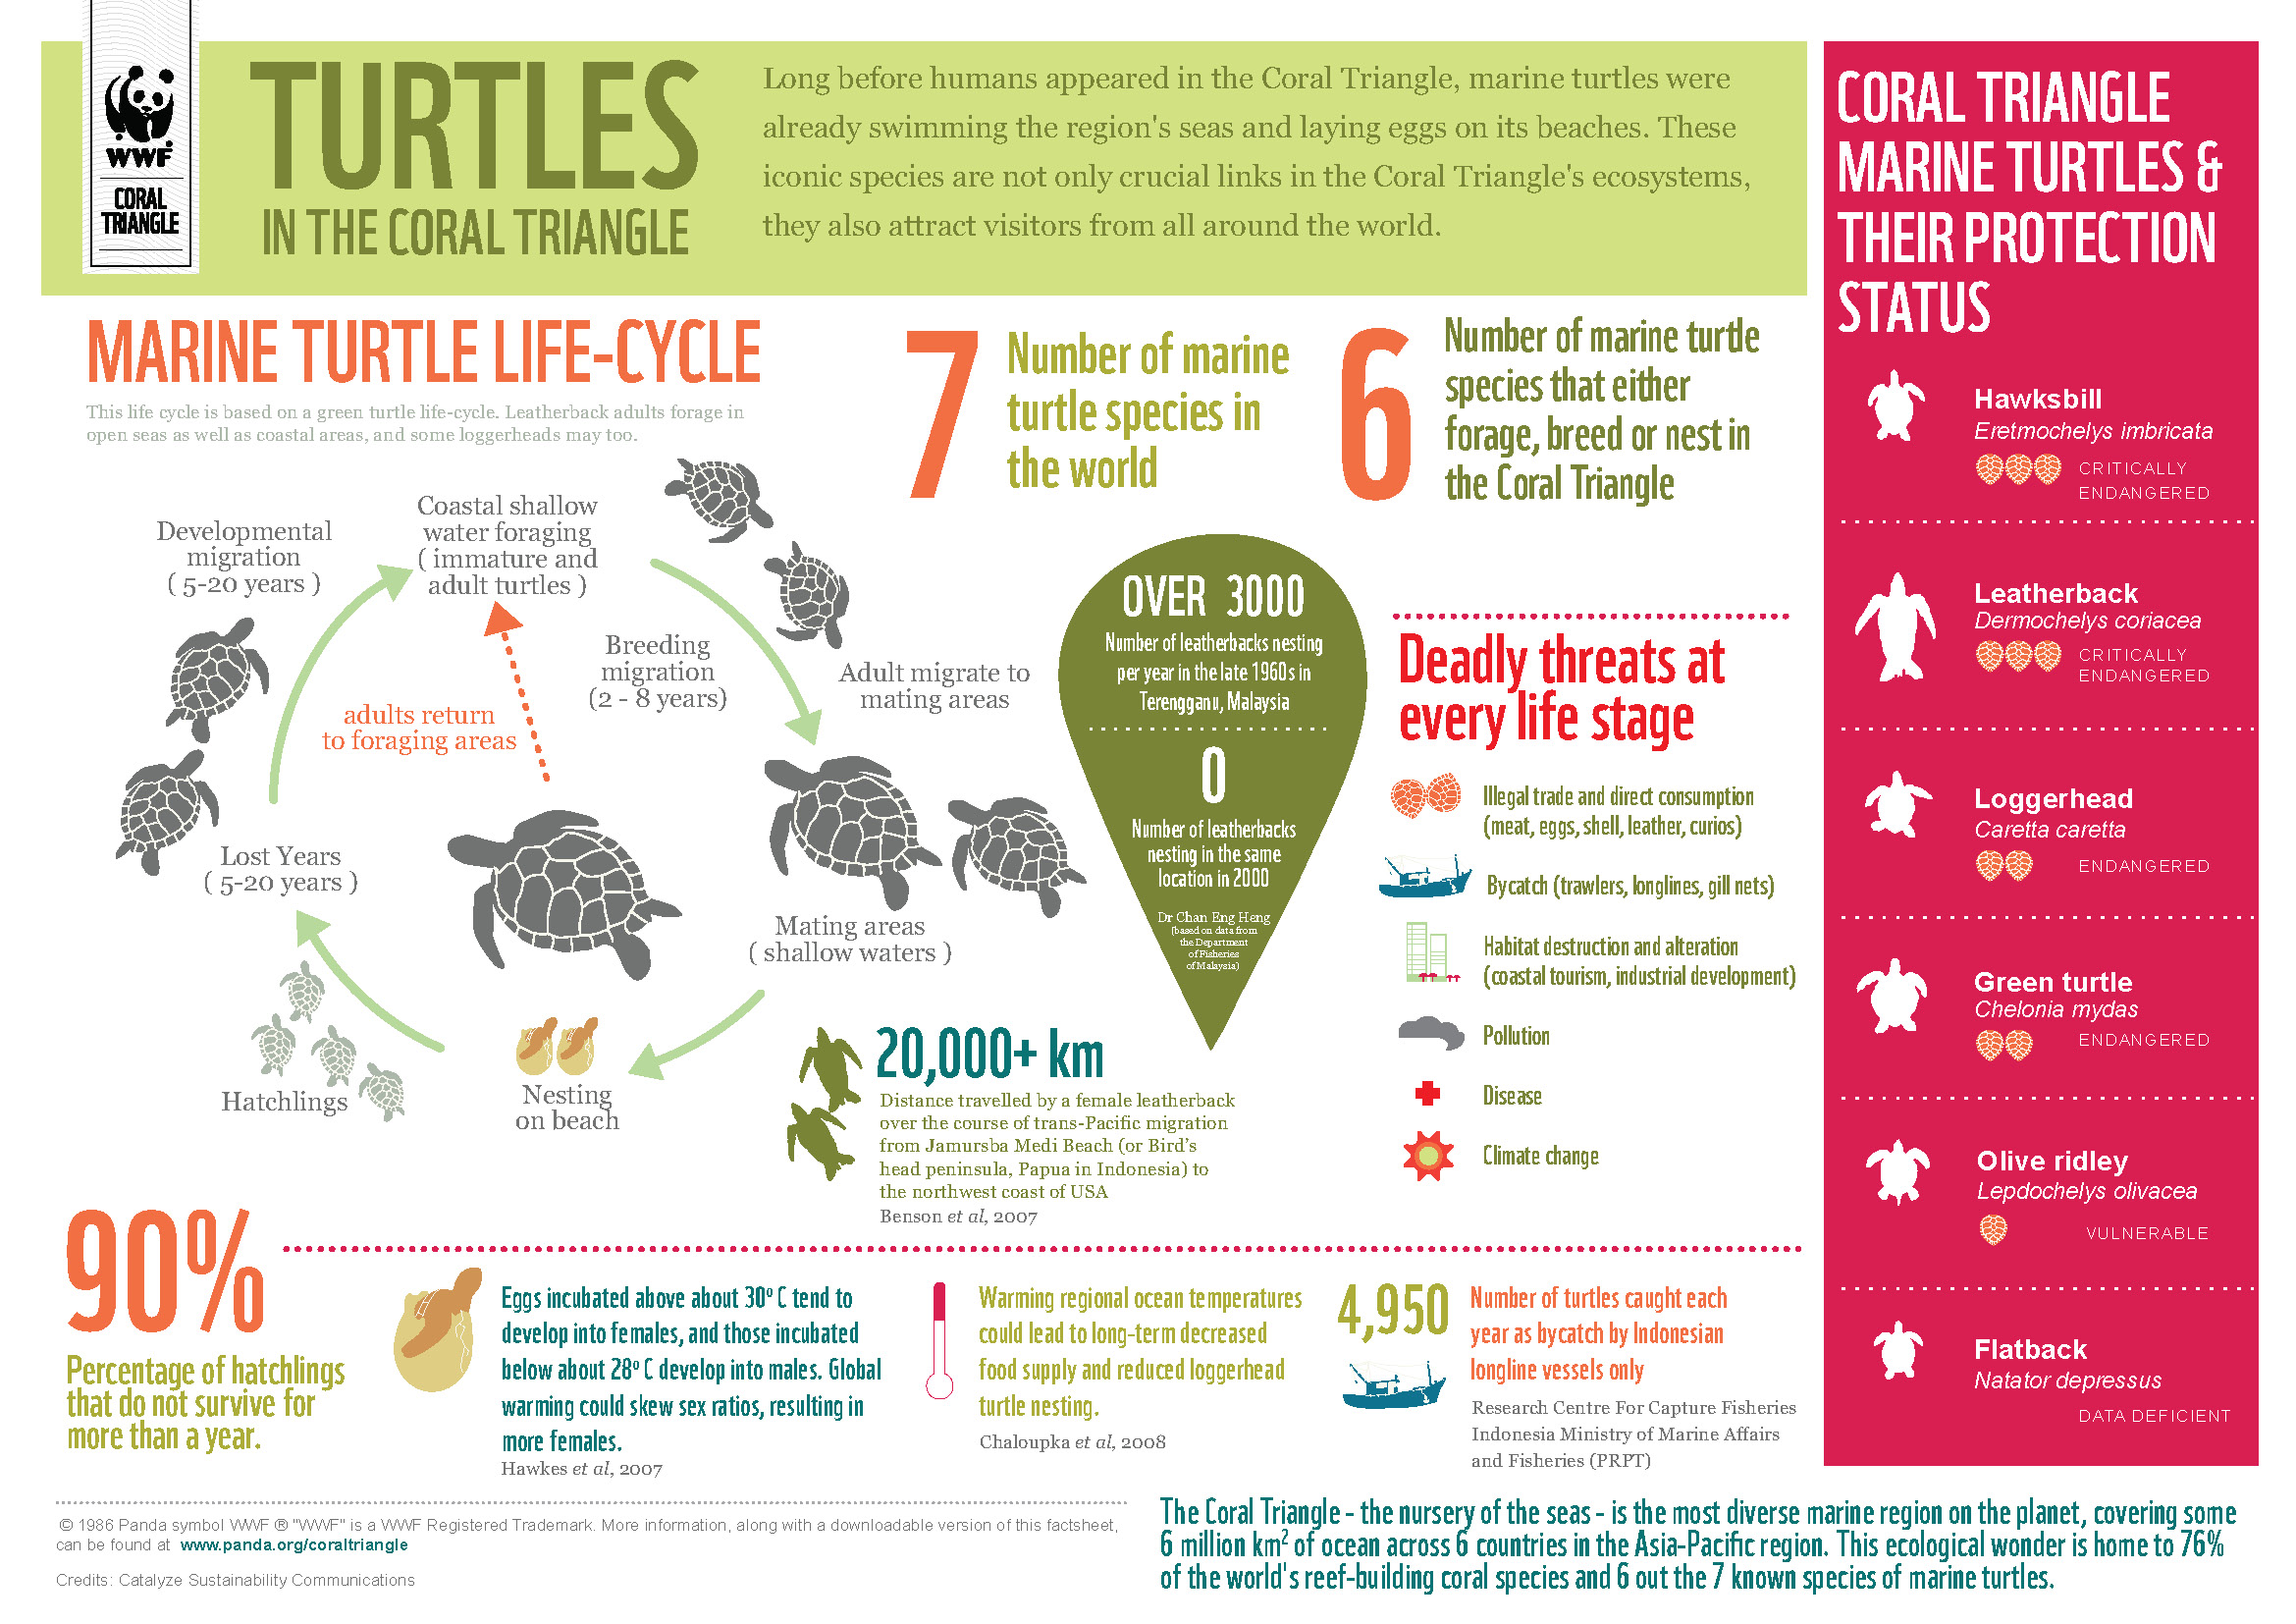 Turtles in the coral triangle